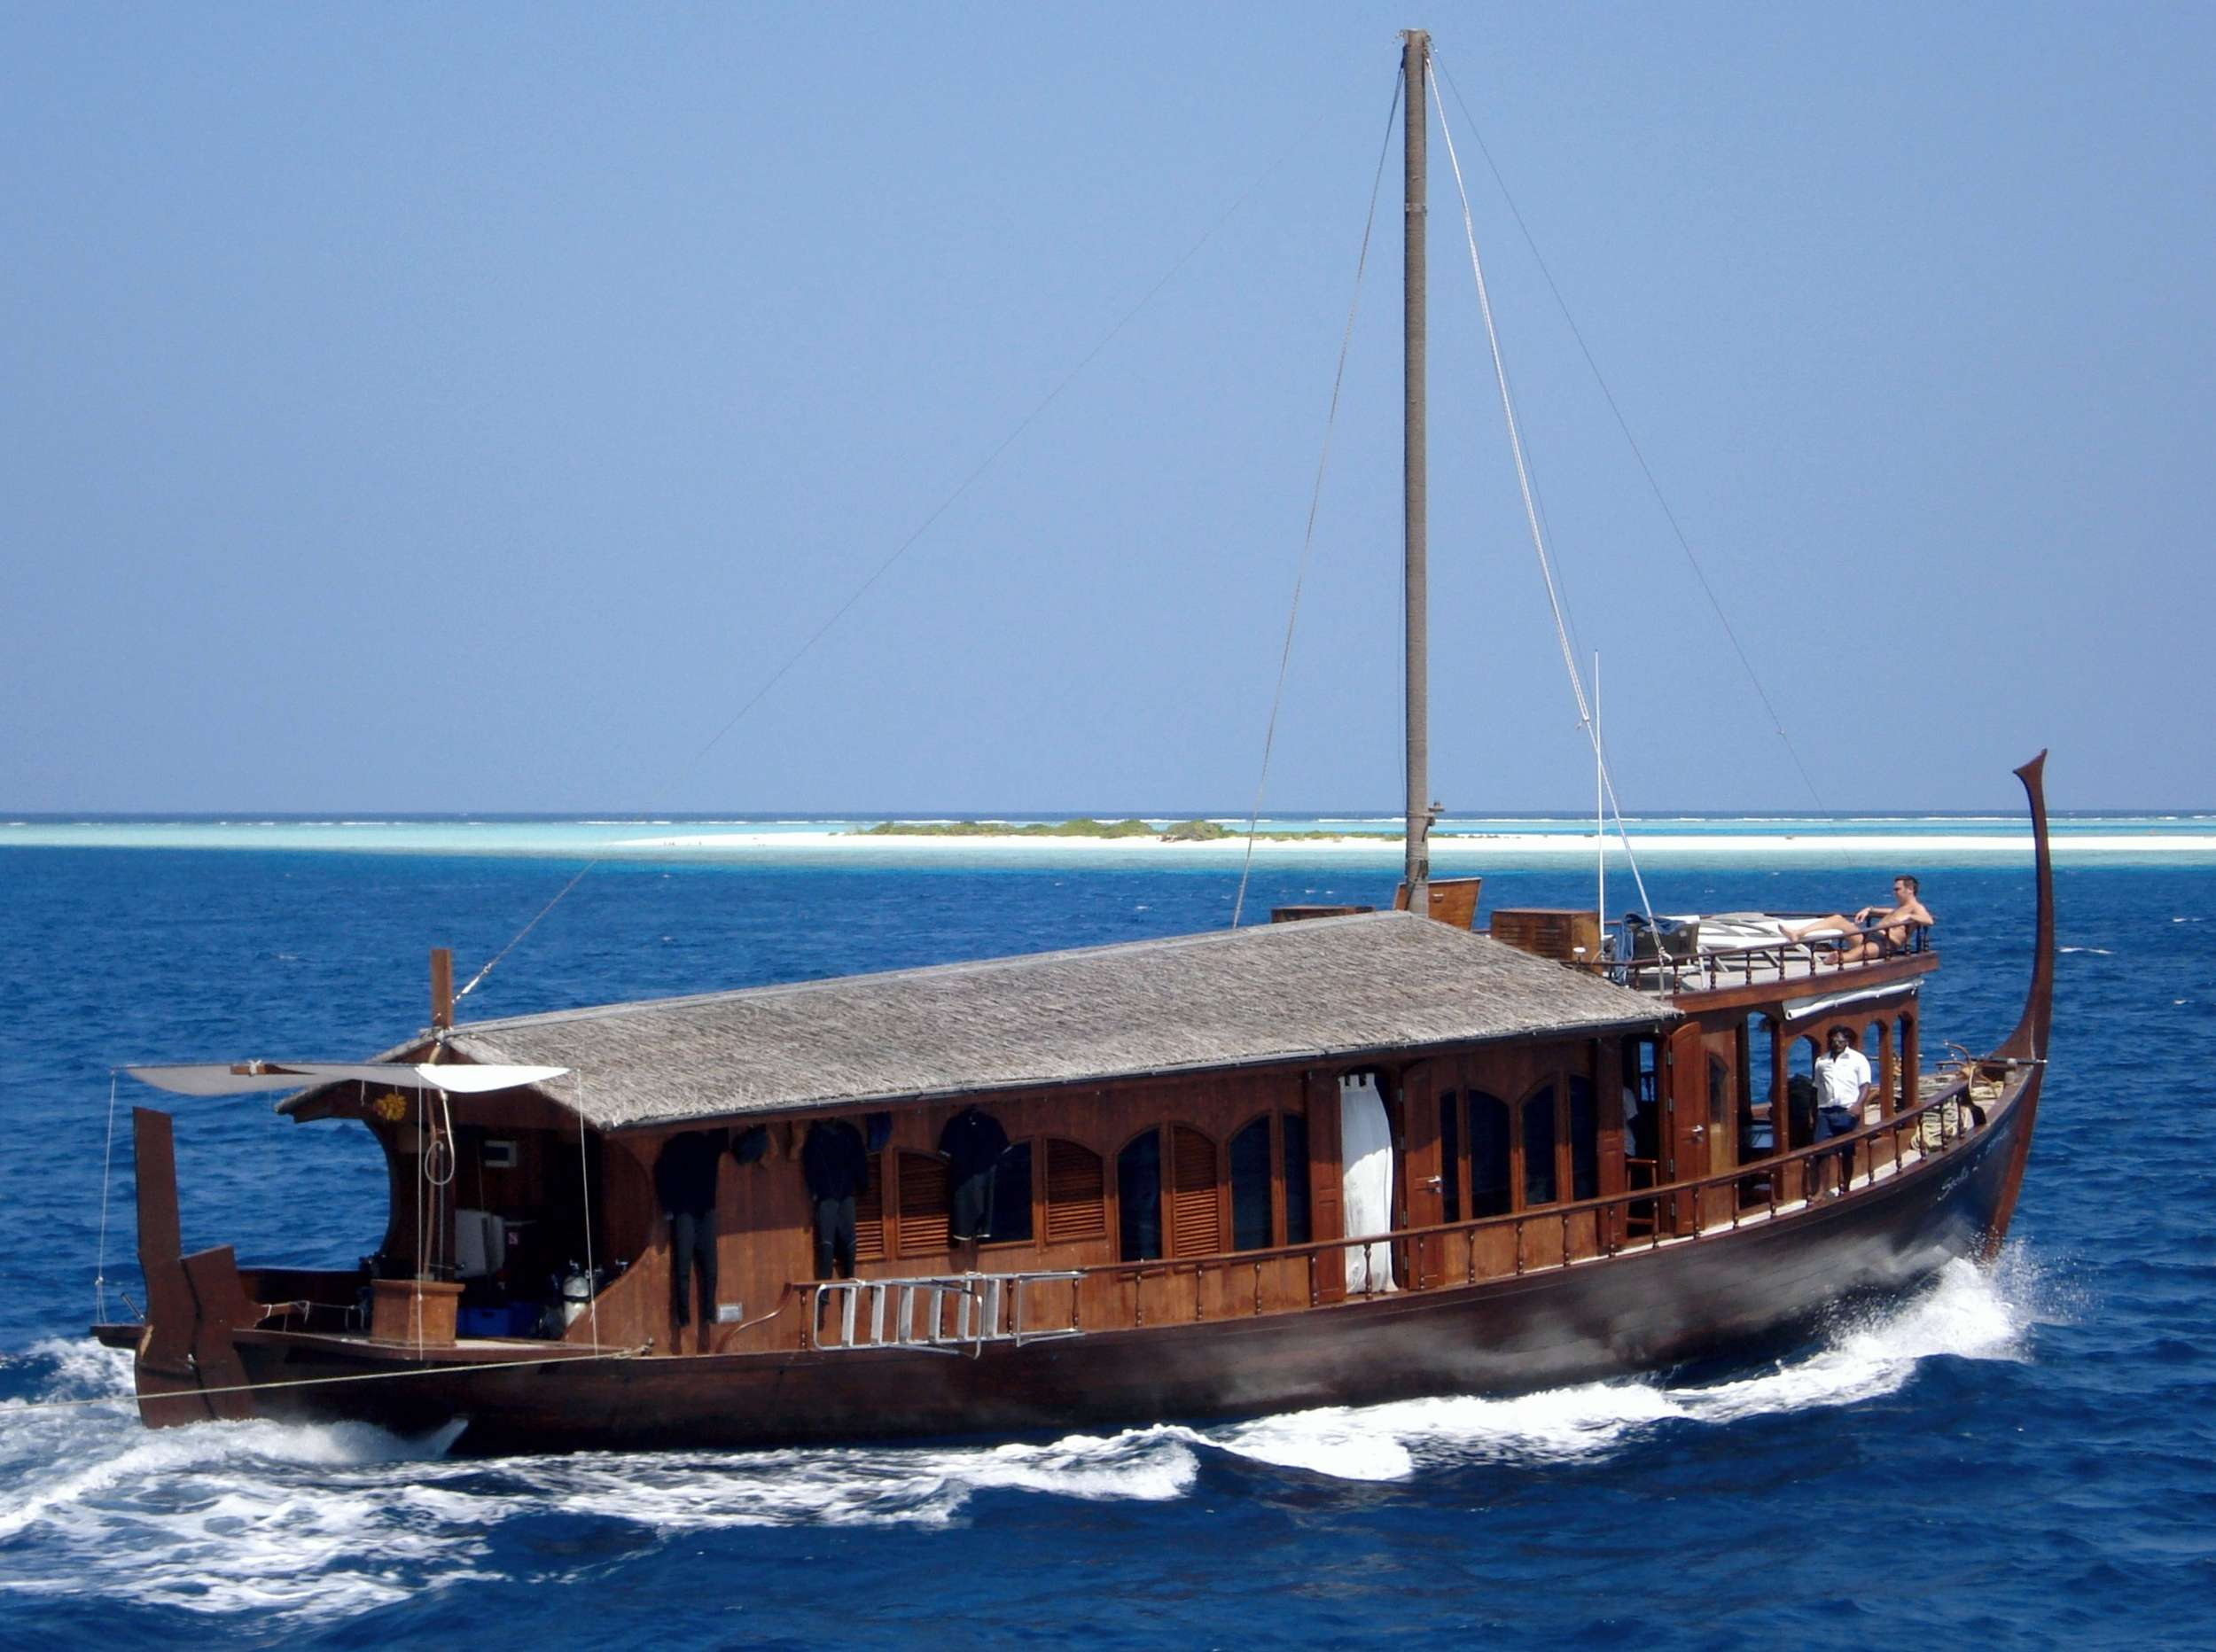 DHONI STELLA I & II are Maldivian luxury dhonies, each with just two air conditioned cabin-suites, catering for 2-6 passengers and available for private charter only. Maldives enthusiasts will experience a really unique holiday, sailing the archipelago with their family or with another couple aboard a genuine and charming traditional boat. DHONI STELLA yachts are wonderful combinations of classic and modern style. Built by using mainly local wood, the finishing touches bring you back to a time of simplicity and elegance, nostalgic of the antique boats on which these cruisers were modeled; though the modern comforts of holiday luxury have certainly not been forgotten. Setting ourselves apart from the other cruisers available in the archipelago, where passengers share the boat with other tourists and follow a pre-planned program, DHONI STELLA guests are free to design their own cruise. You choose the destinations and activities that suit you, including: scuba diving, surfing, snorkeling, fishing, islands hopping and more.